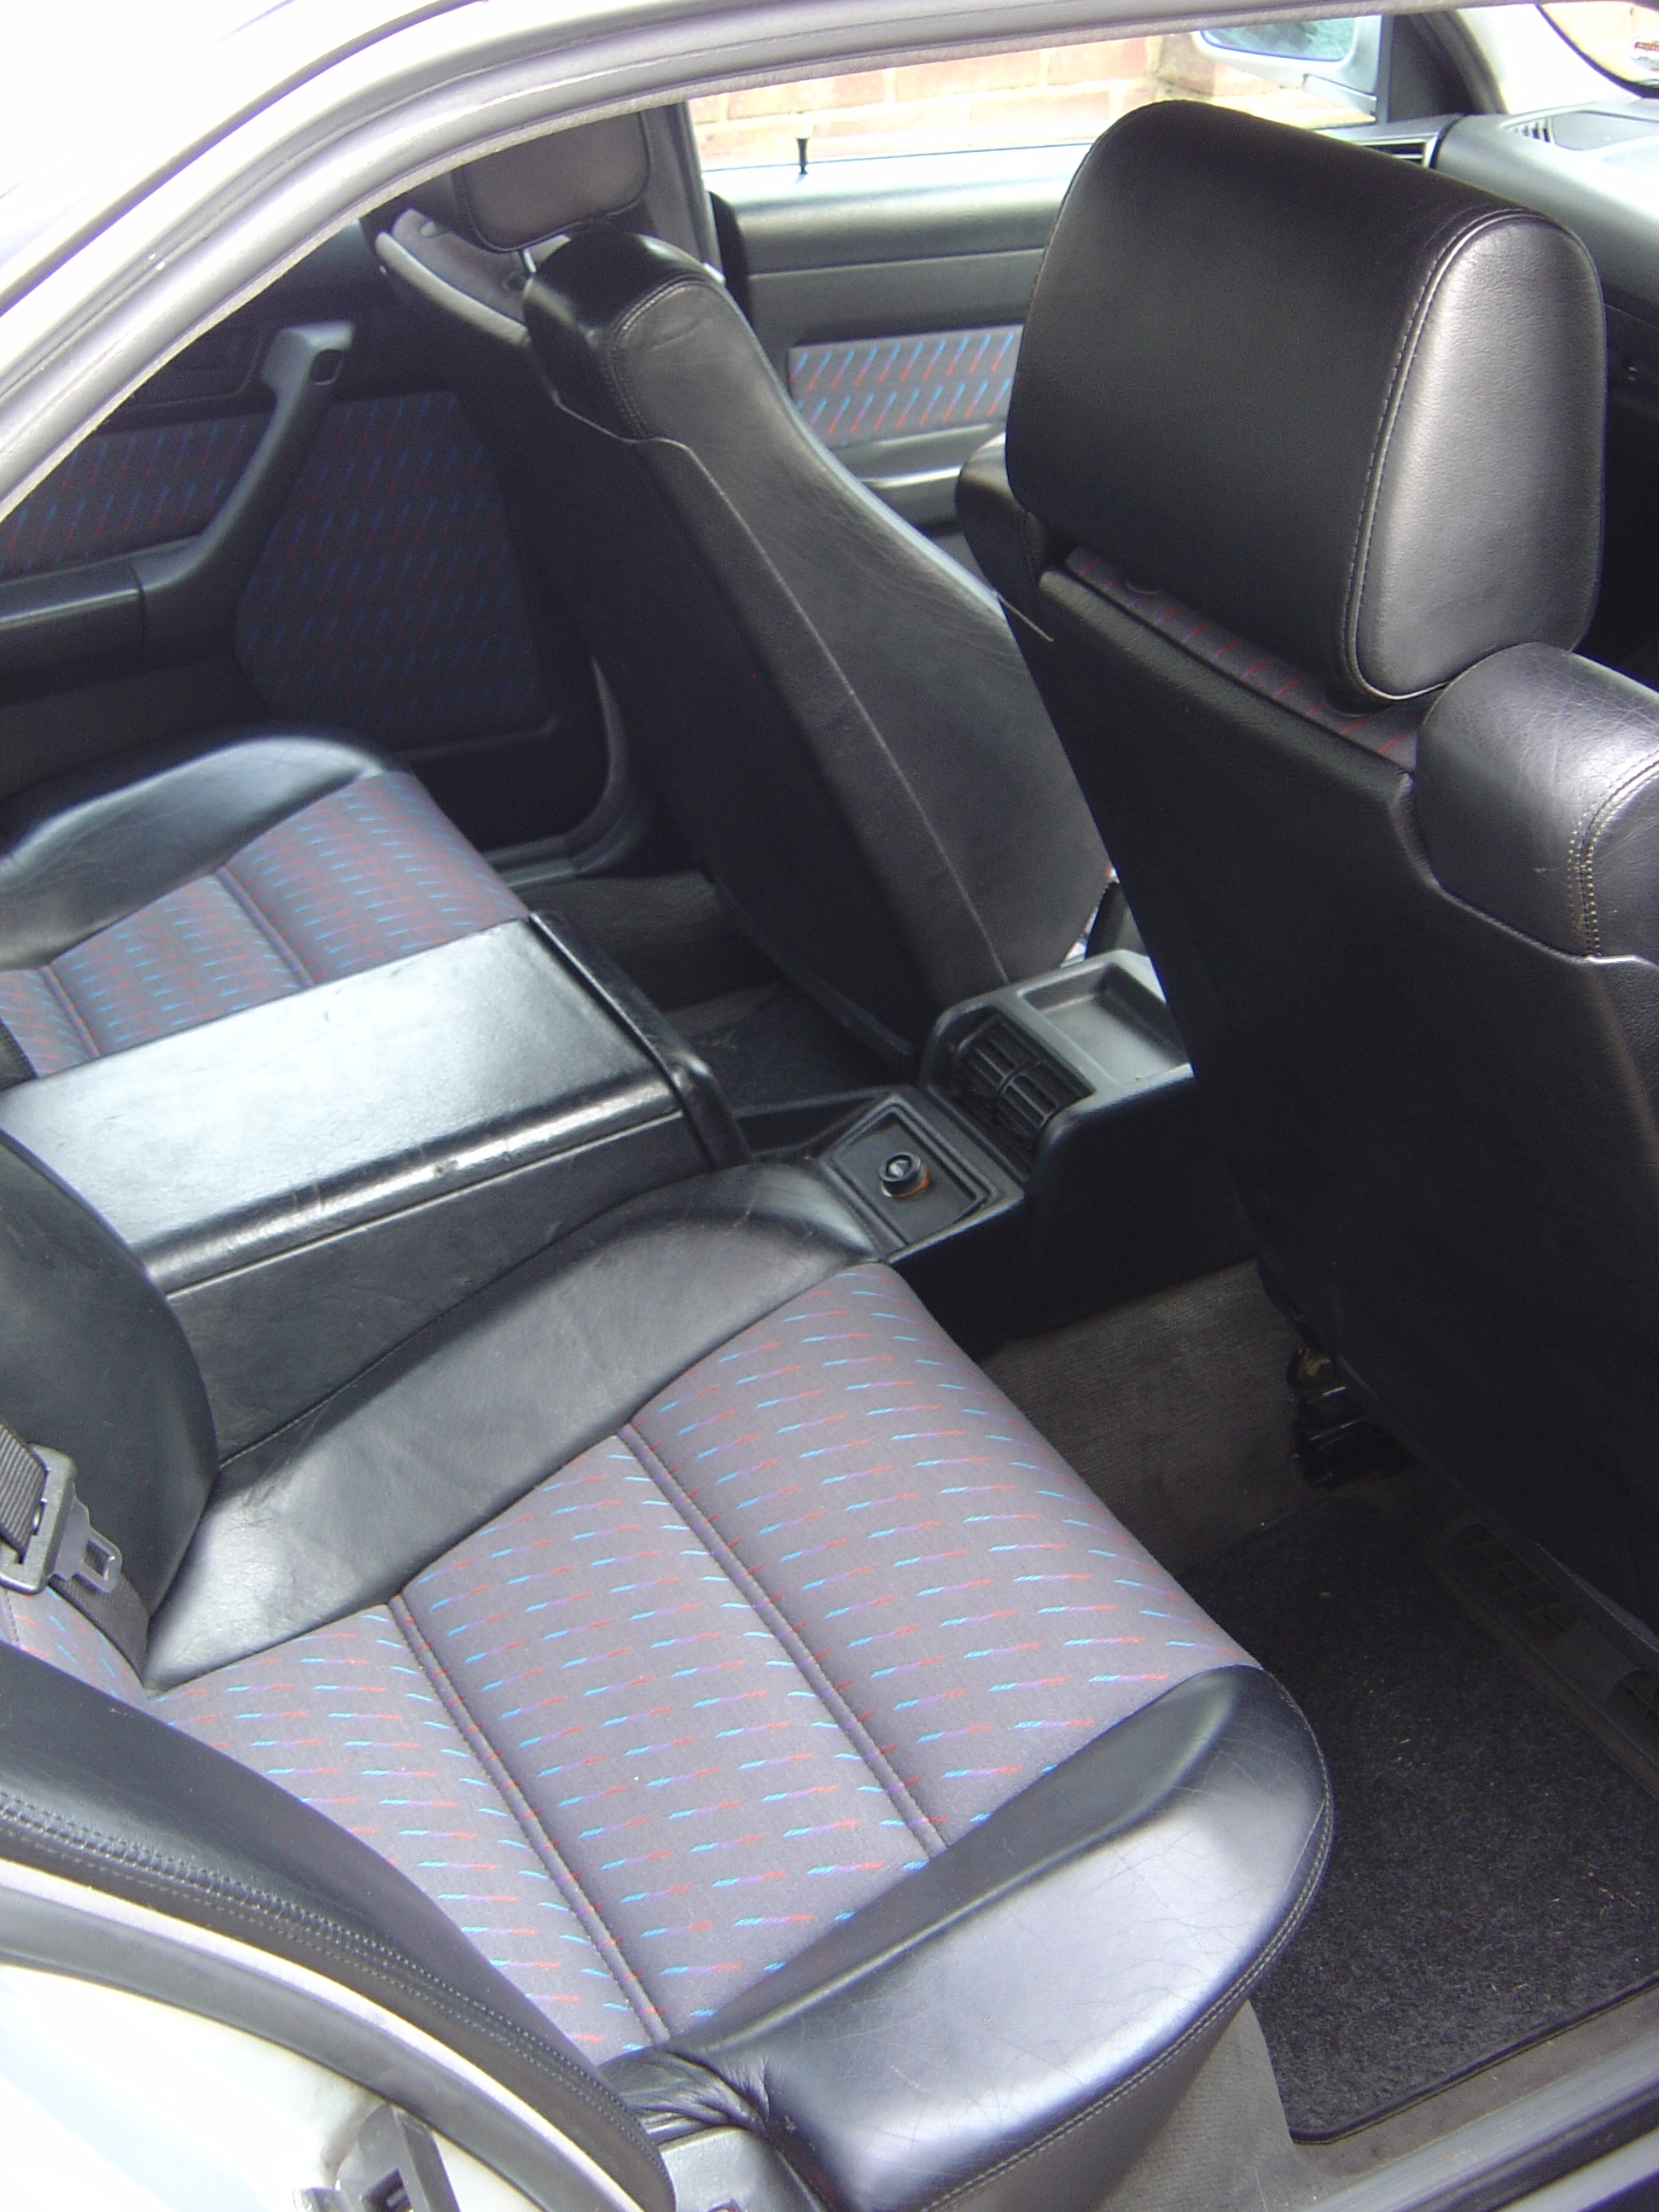 Upgrade half leather to full leather seats? (UK)-e34-rear-interior.jpg